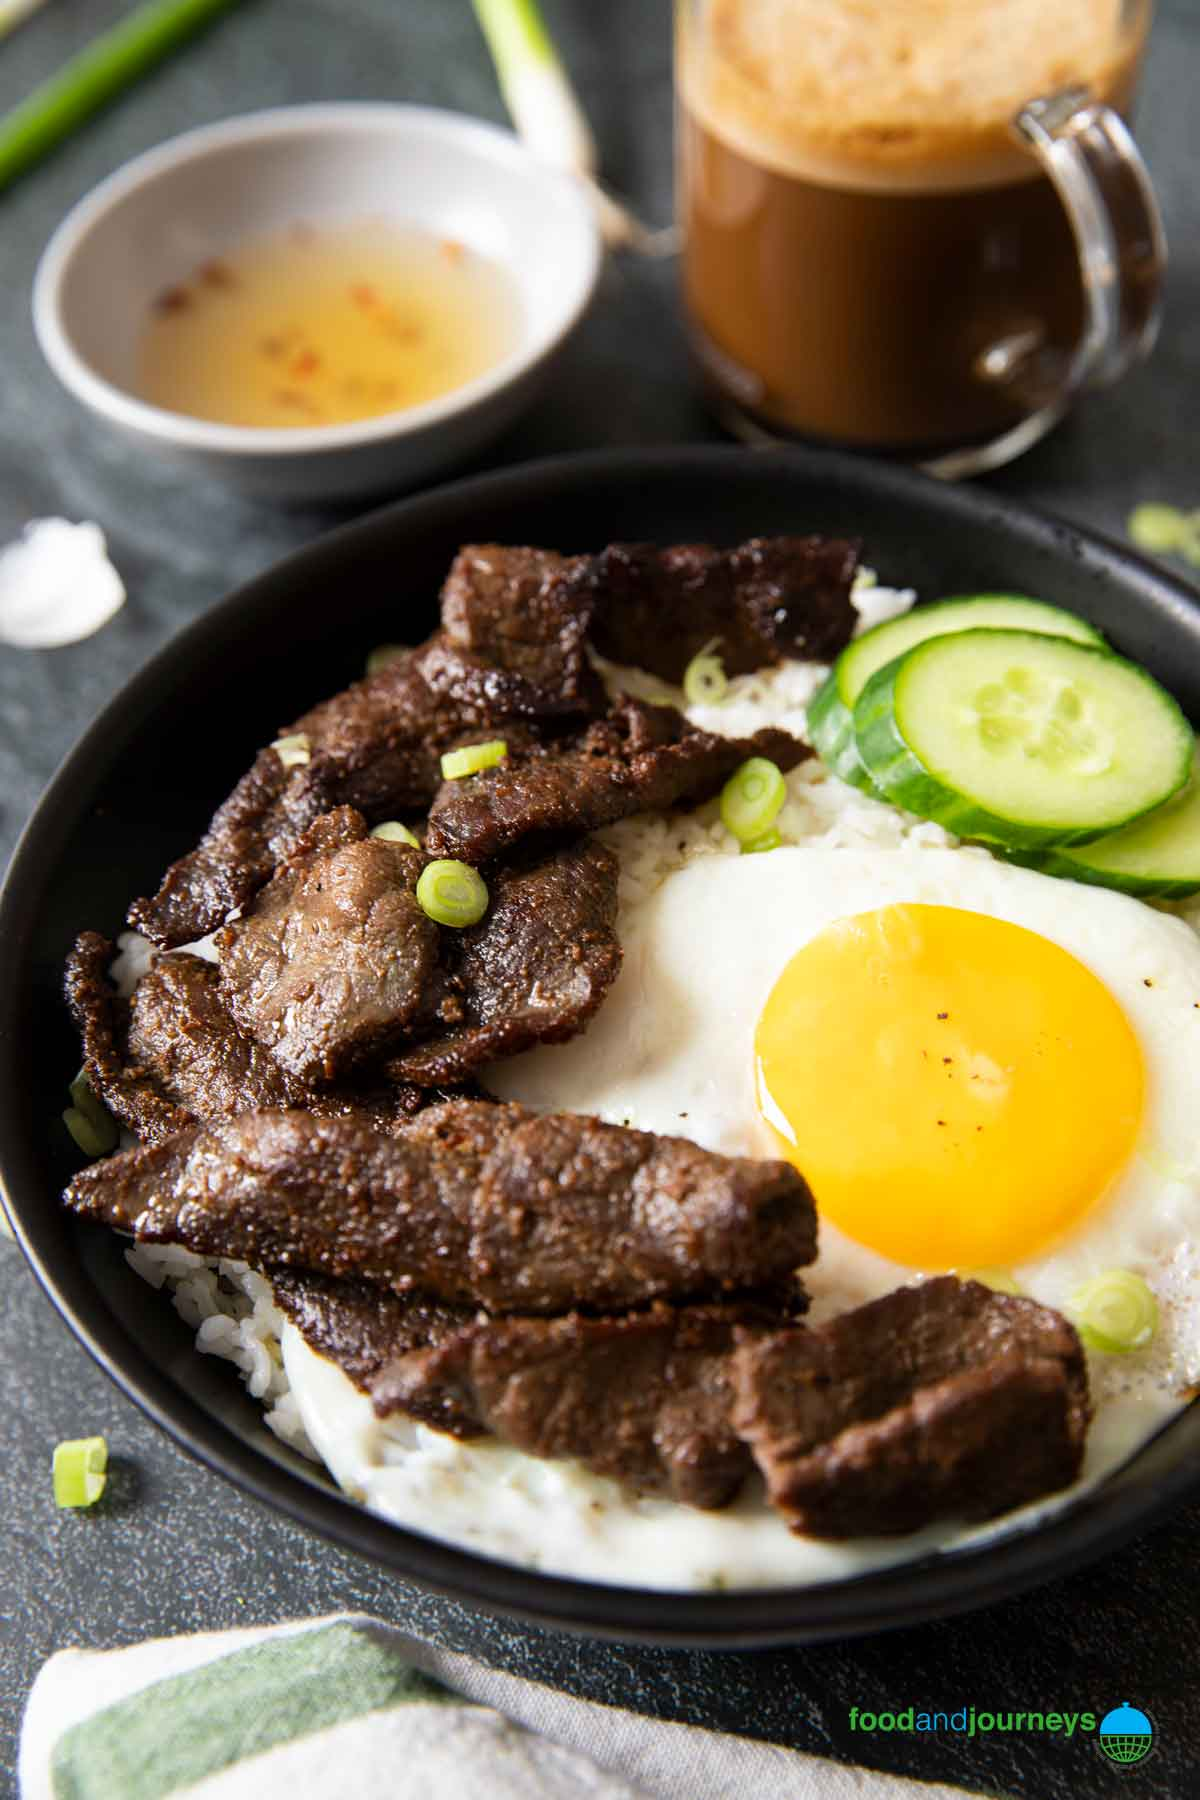 A closer shot of a serving of tapsilog, highlighting the slices of beef.